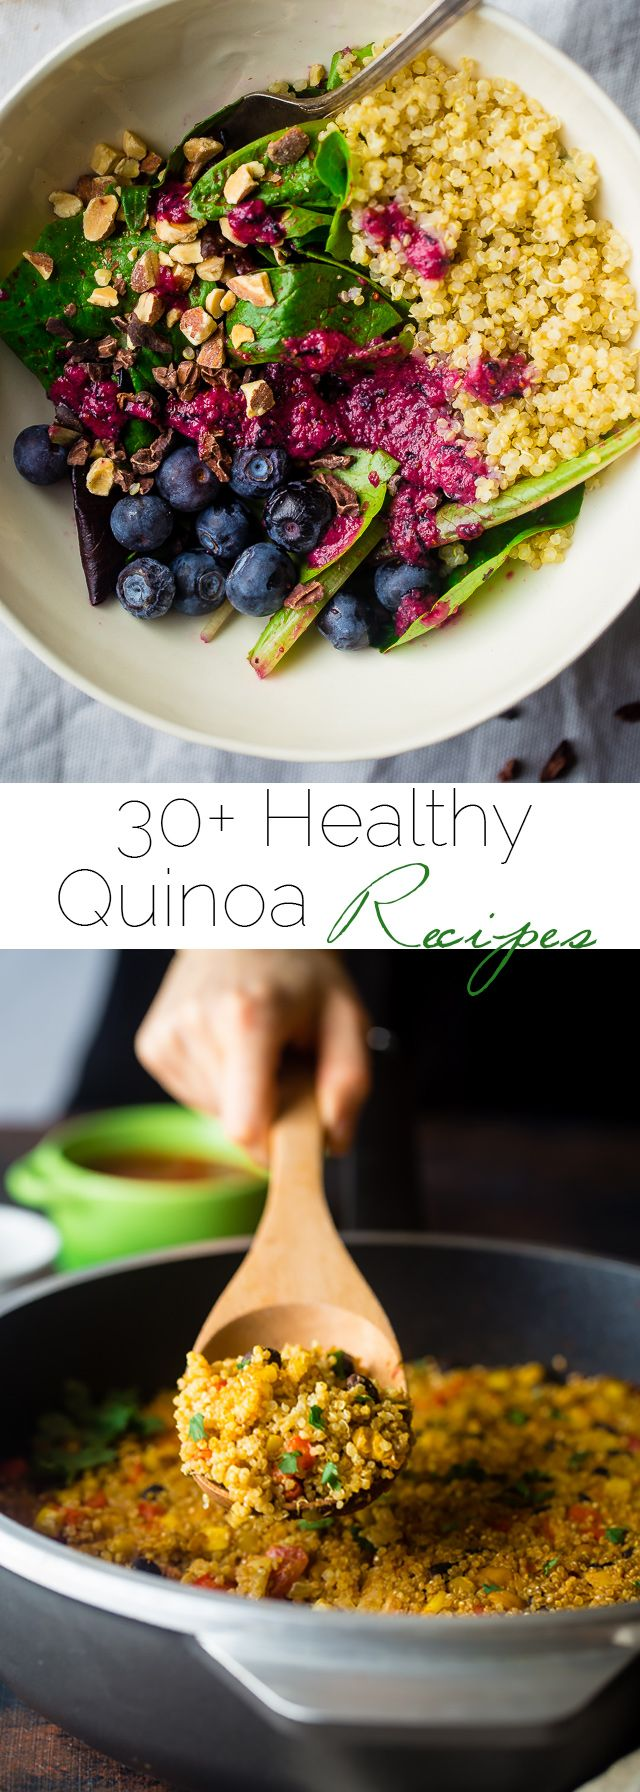 30+ Healthy Quinoa Recipes  - The best quinoa recipes that taste great and will lighten up your waistline! | Foodfaithfitness.com | @FoodFaithFit -   19 best quinoa recipes